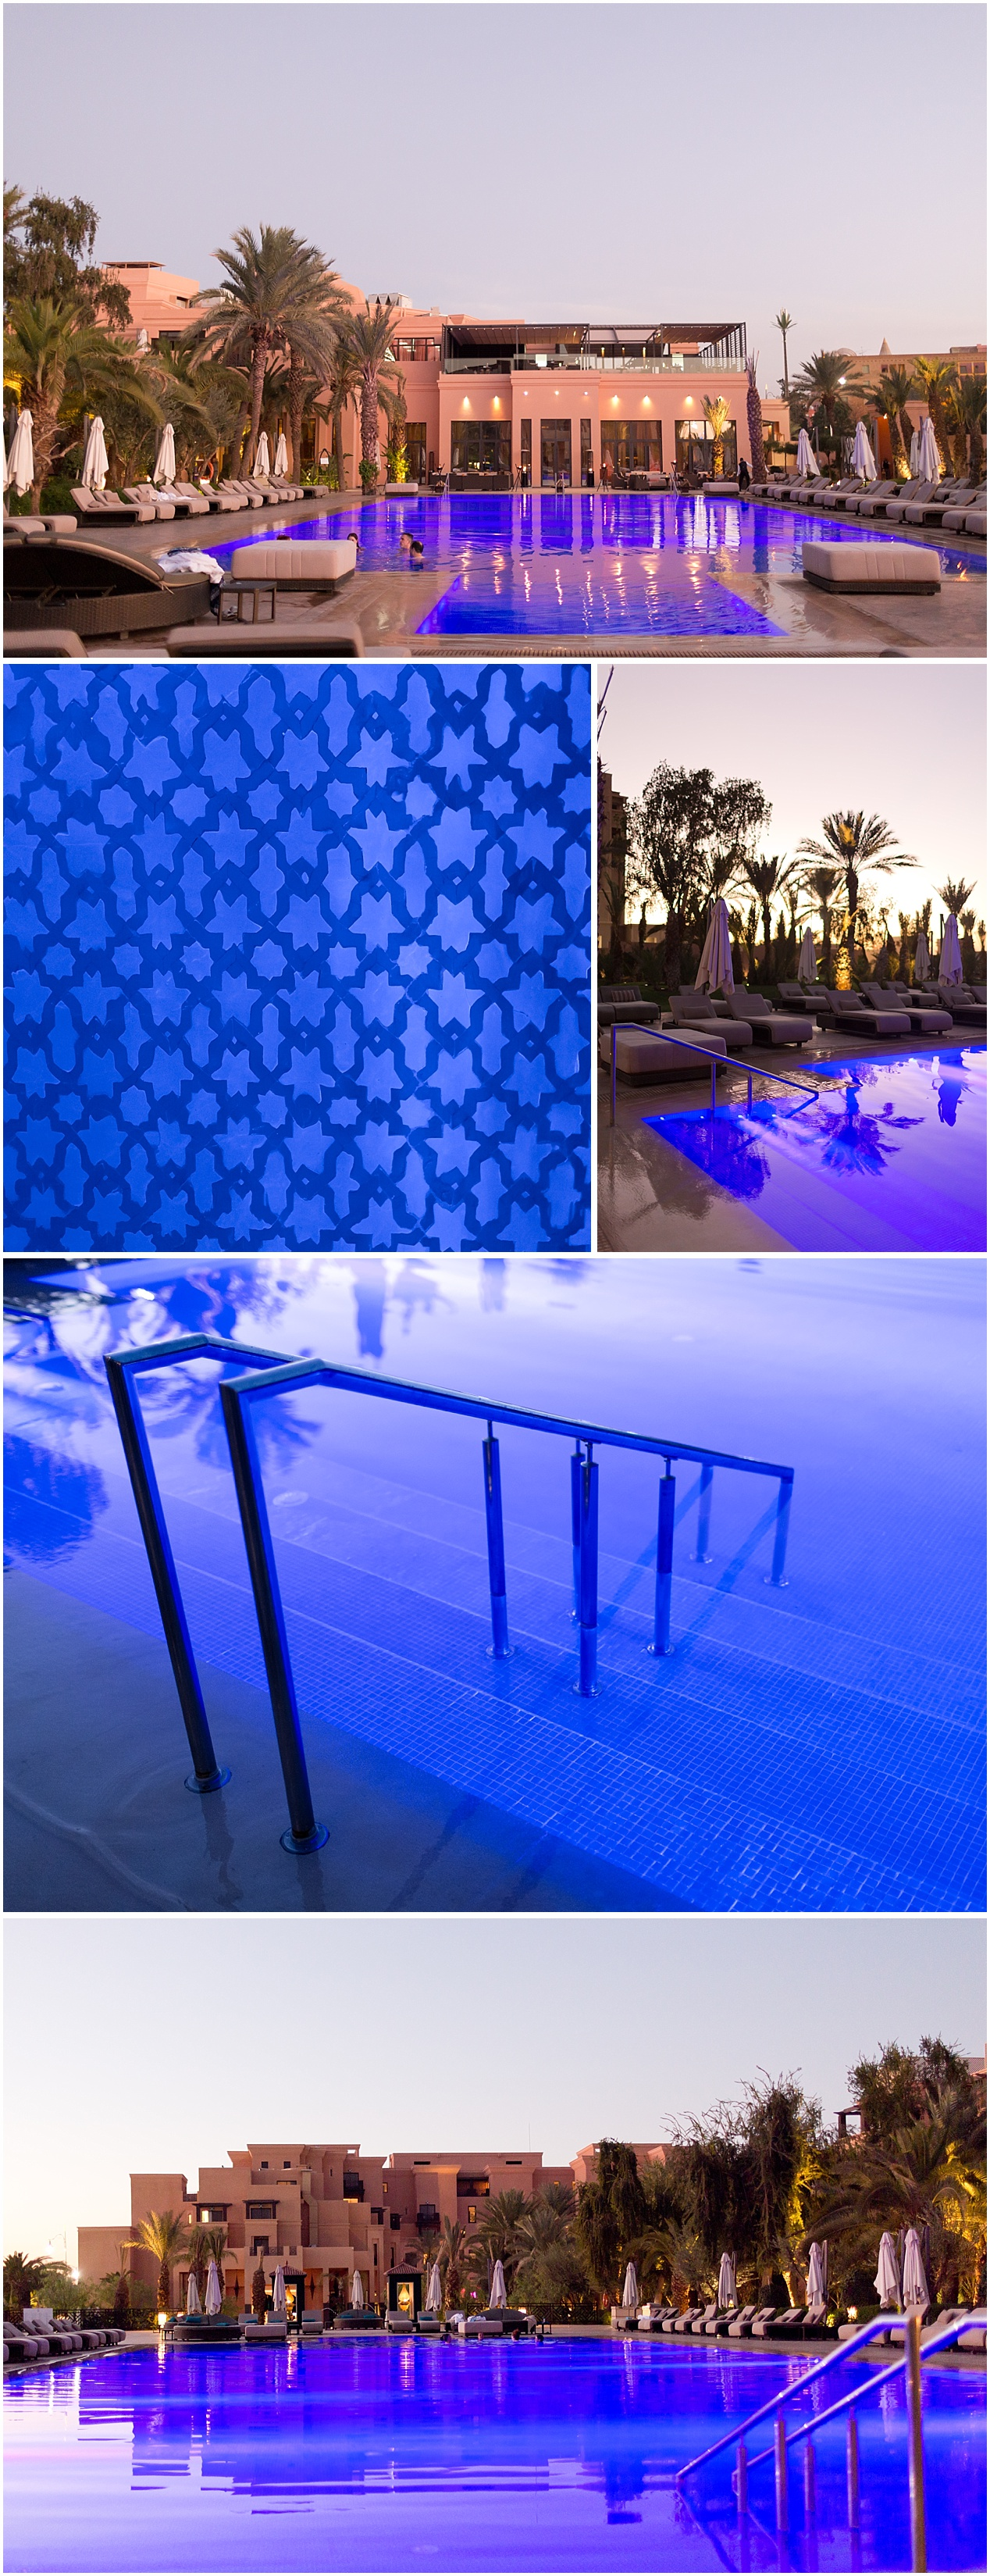 luxurious outdoor pool at Morocco Hotel - Movenpick Marrakesh